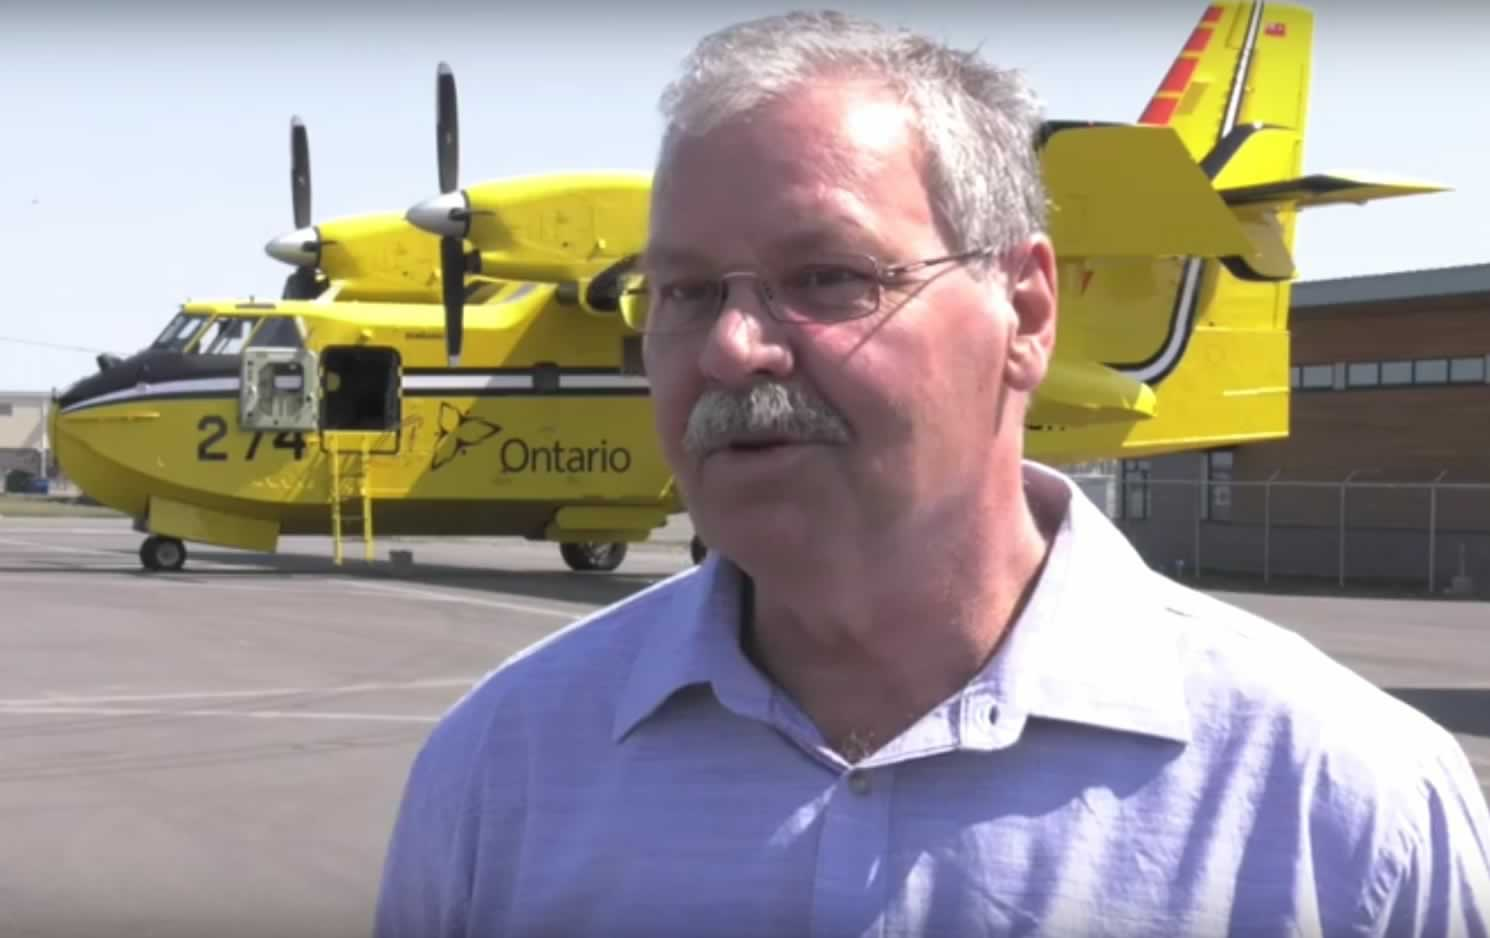 OPSEU President Warren (Smokey) Thomas in front of a MNRF firefighting airplane.